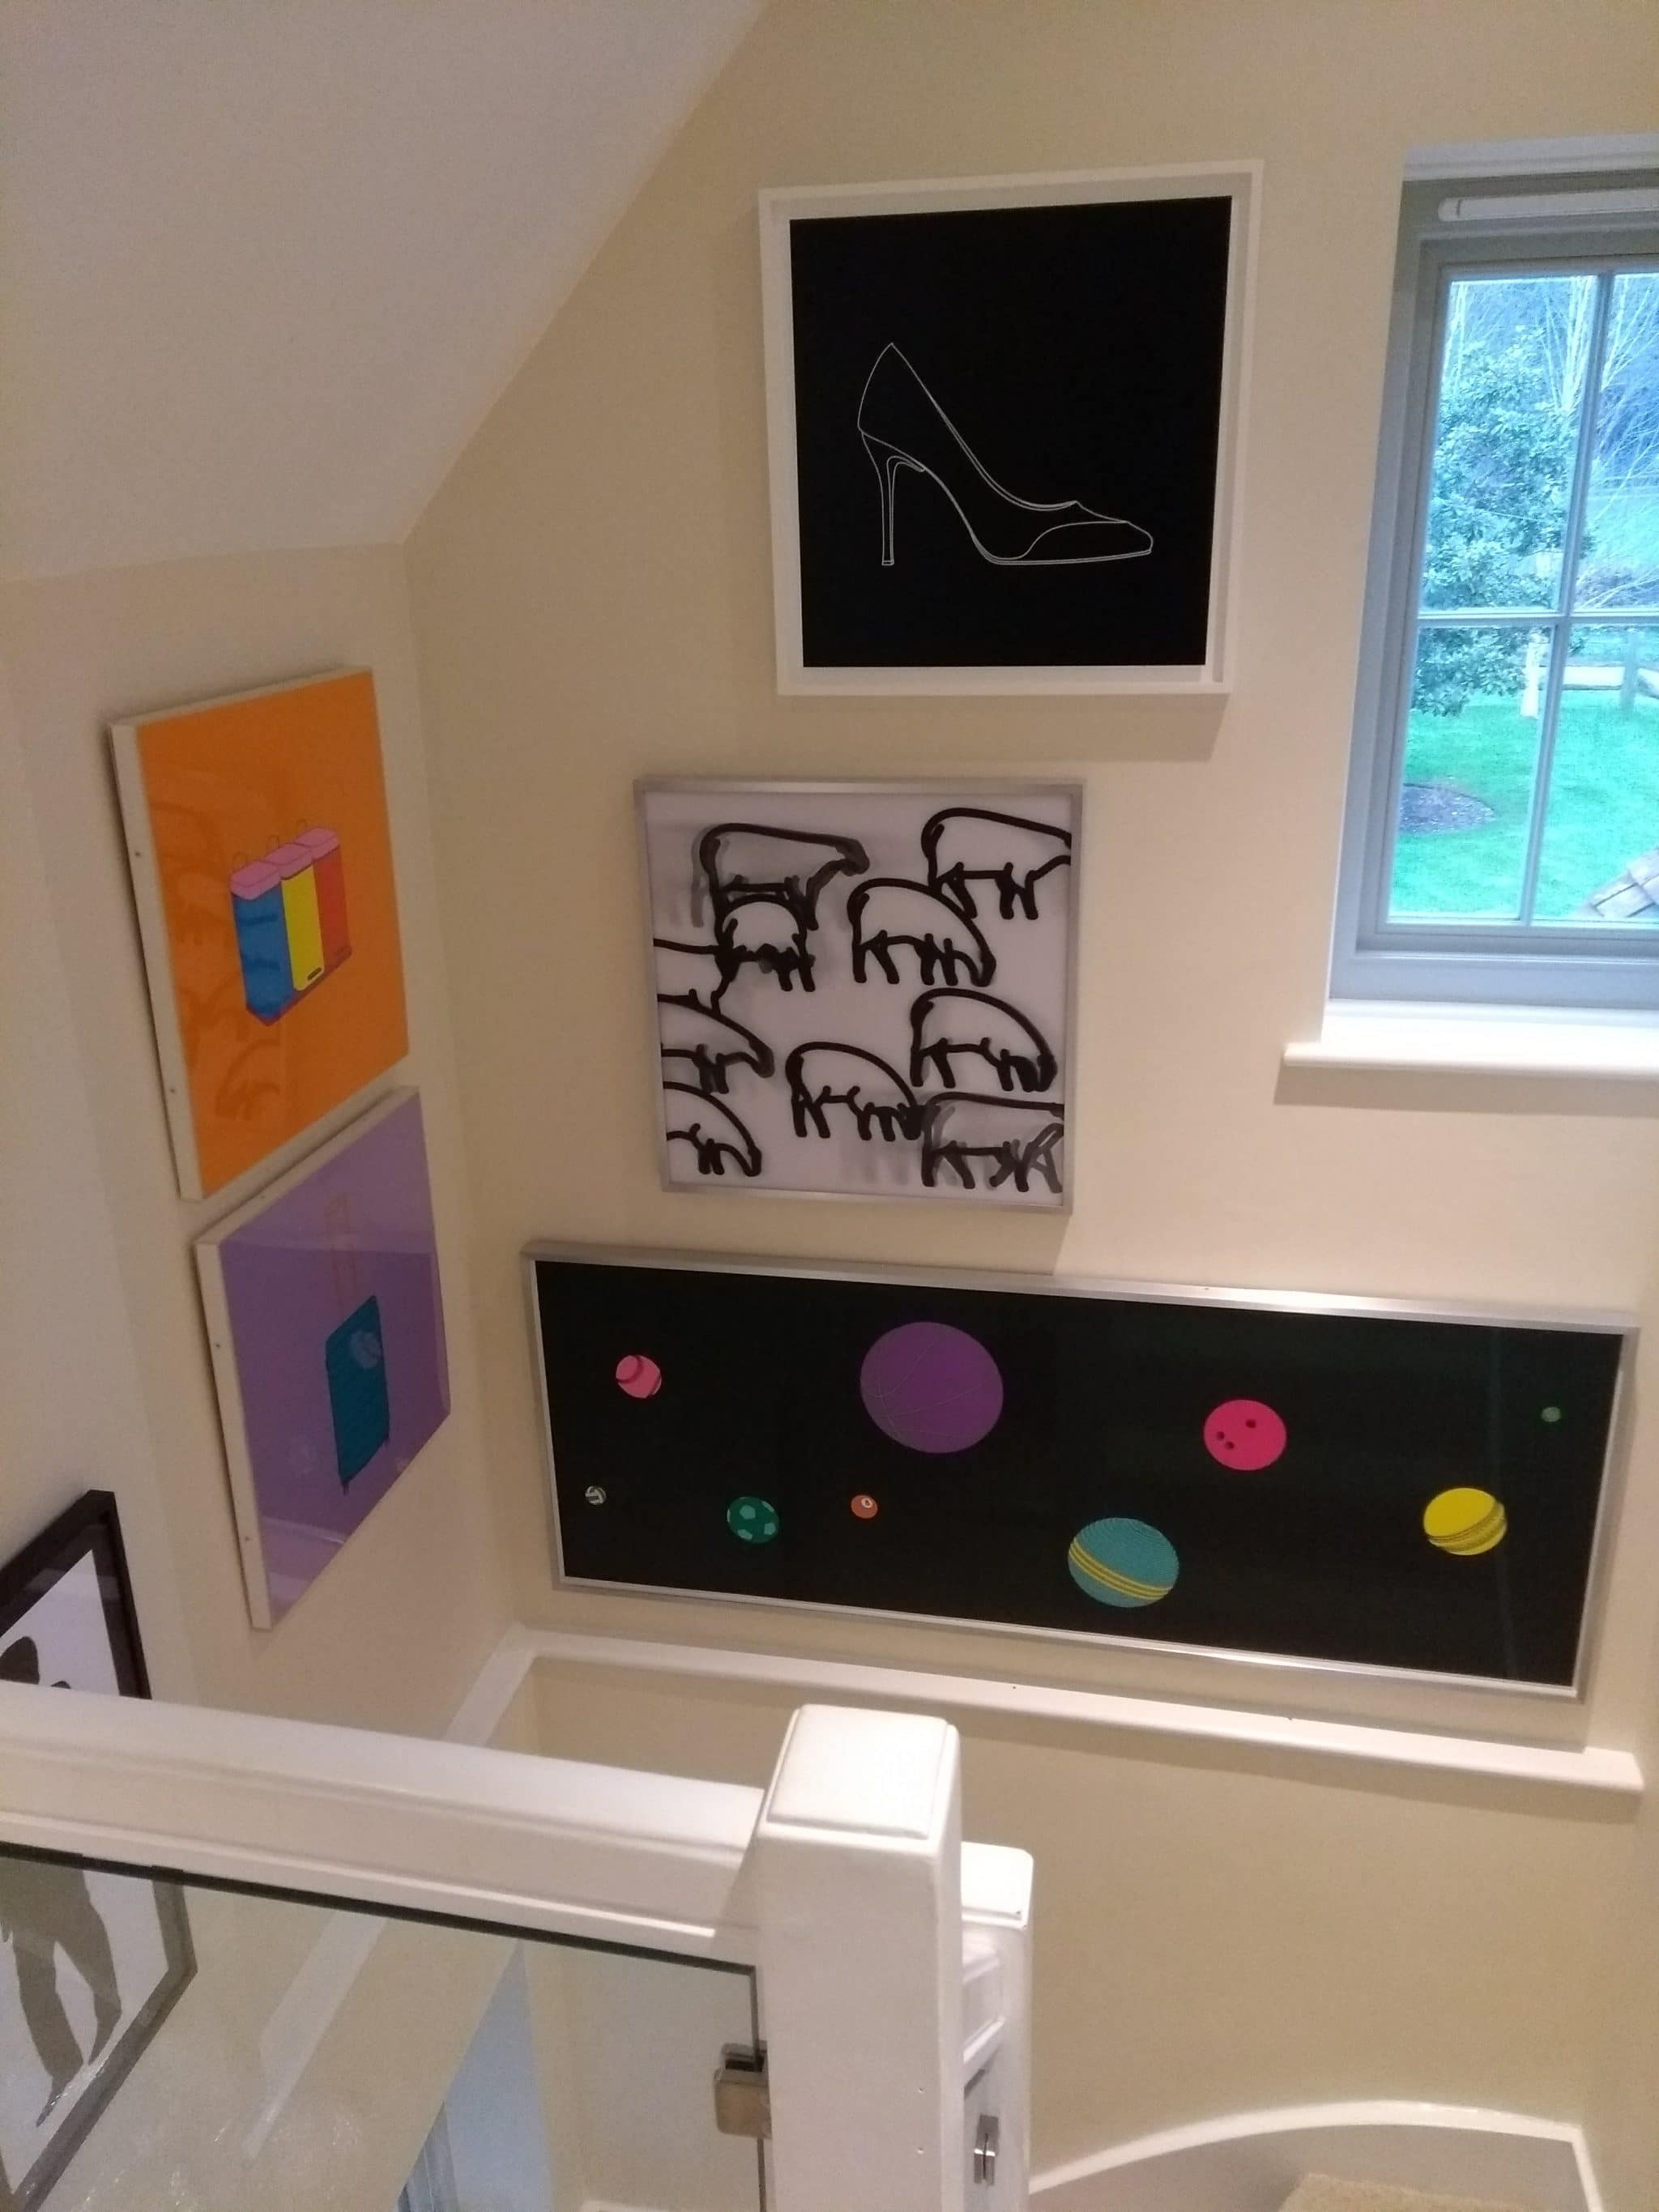 Julian Opie and Michael Craig-Martin paintings hung in a stairwell in Haywards Heath.